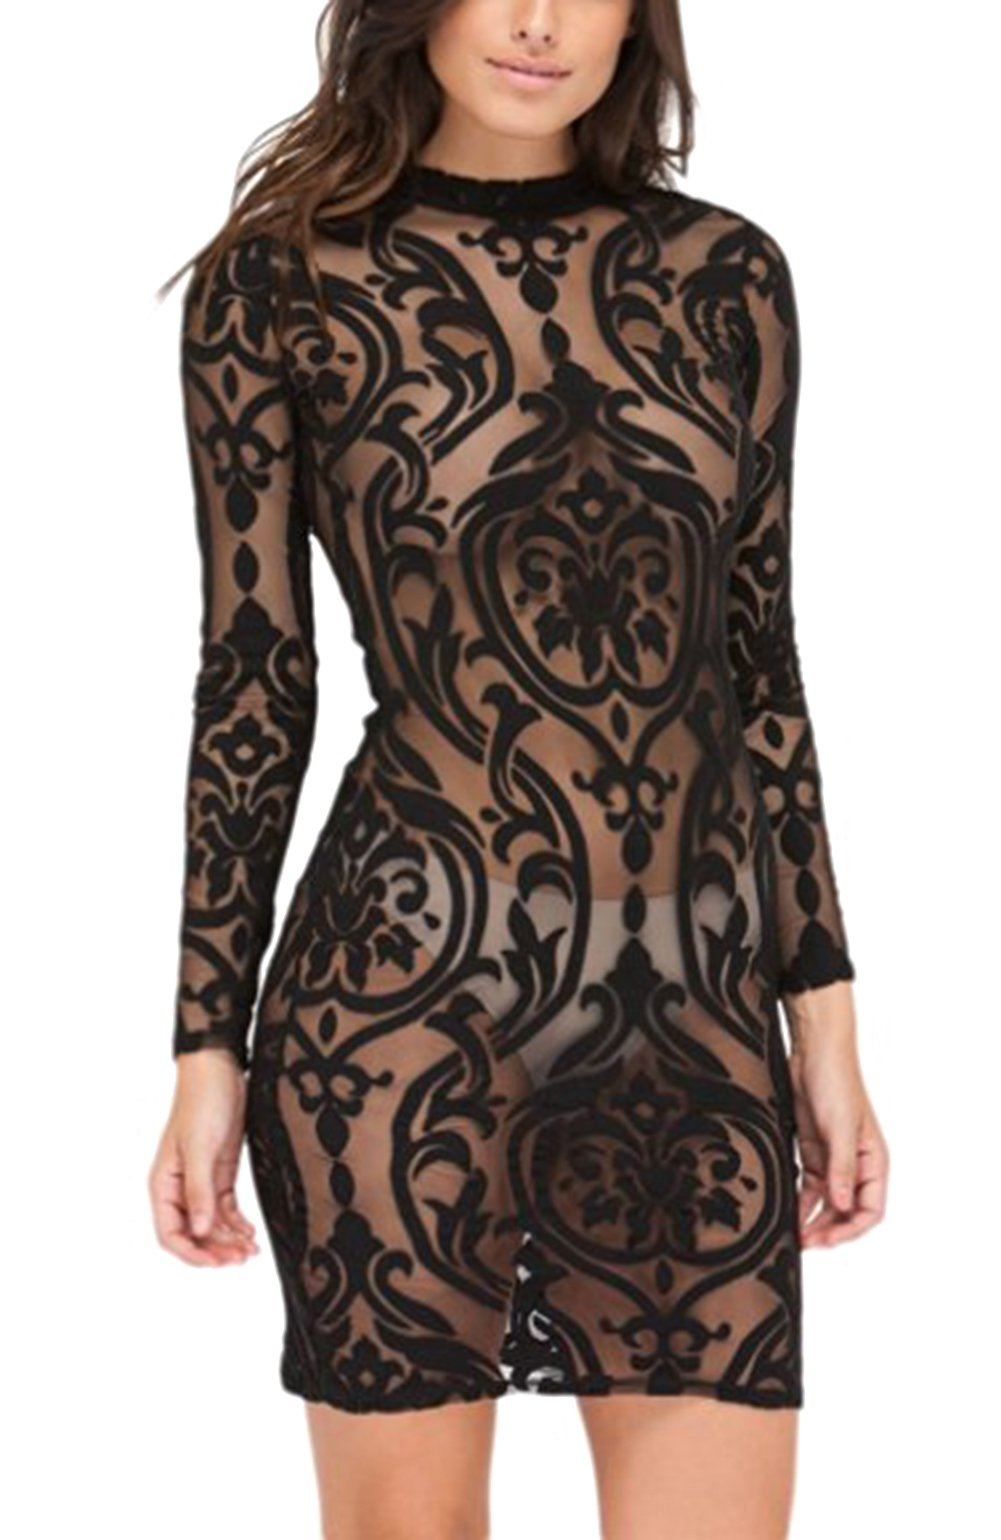 Hot Sale Women's Sexy Stylish Long Sleeve Mesh See Through Backless Bandage Club Dress (XL, black)